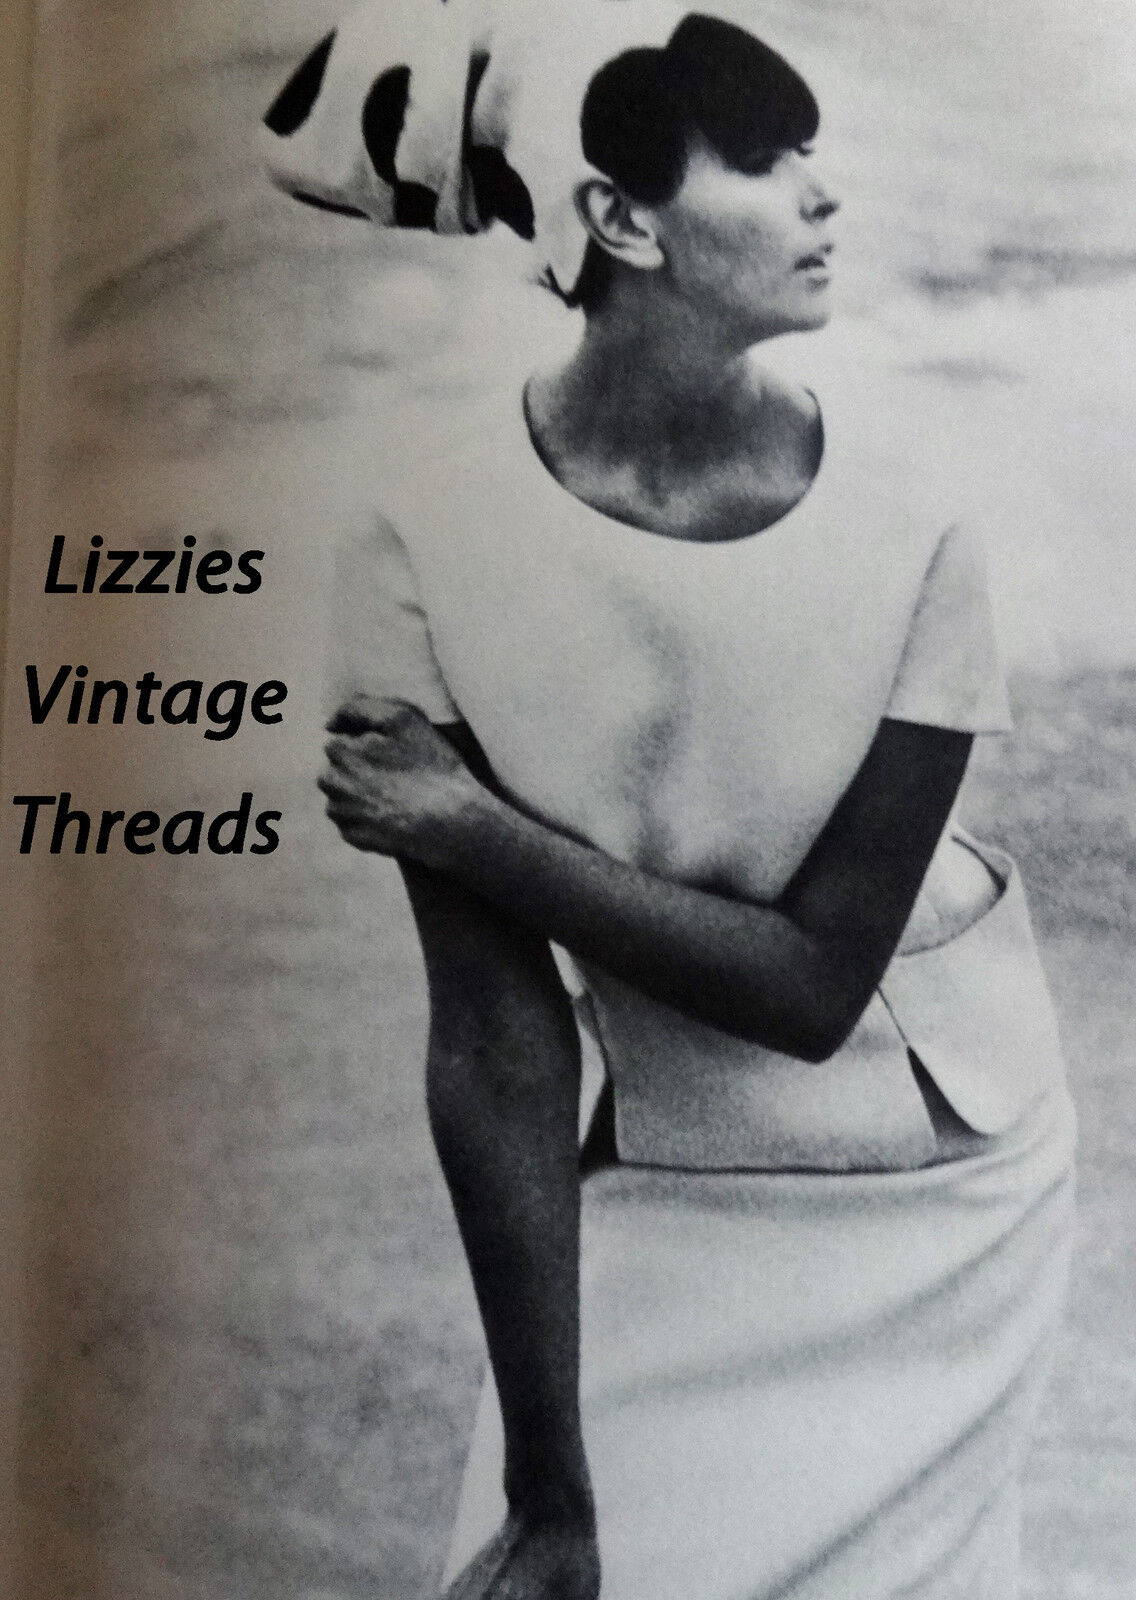 Lizzies Vintage Threads